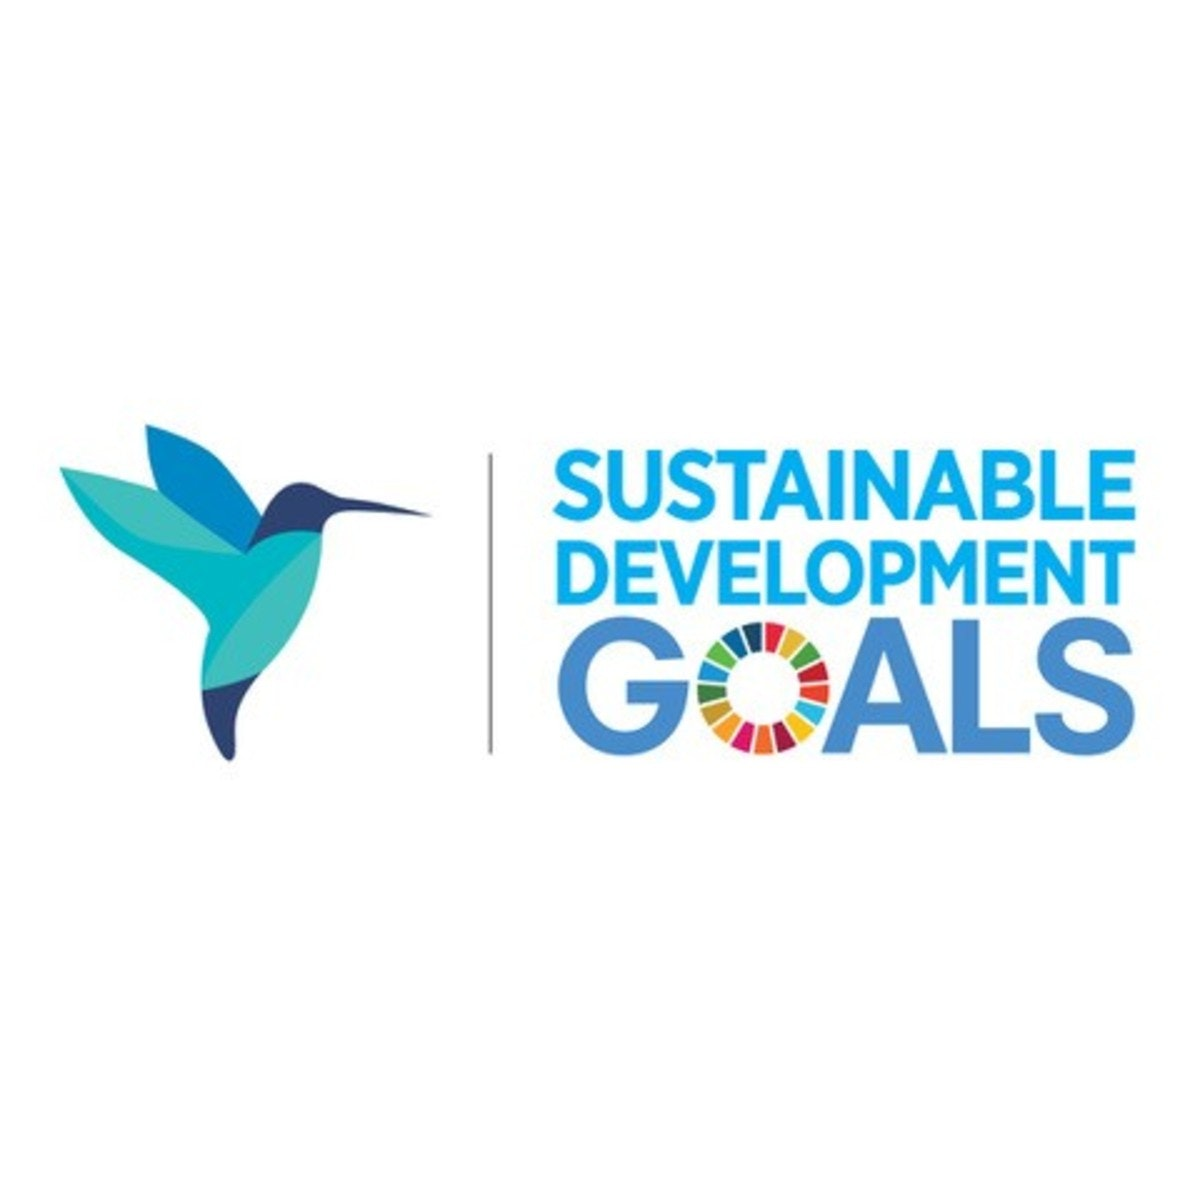 Driving business towards the Sustainable Development Goals Coupon